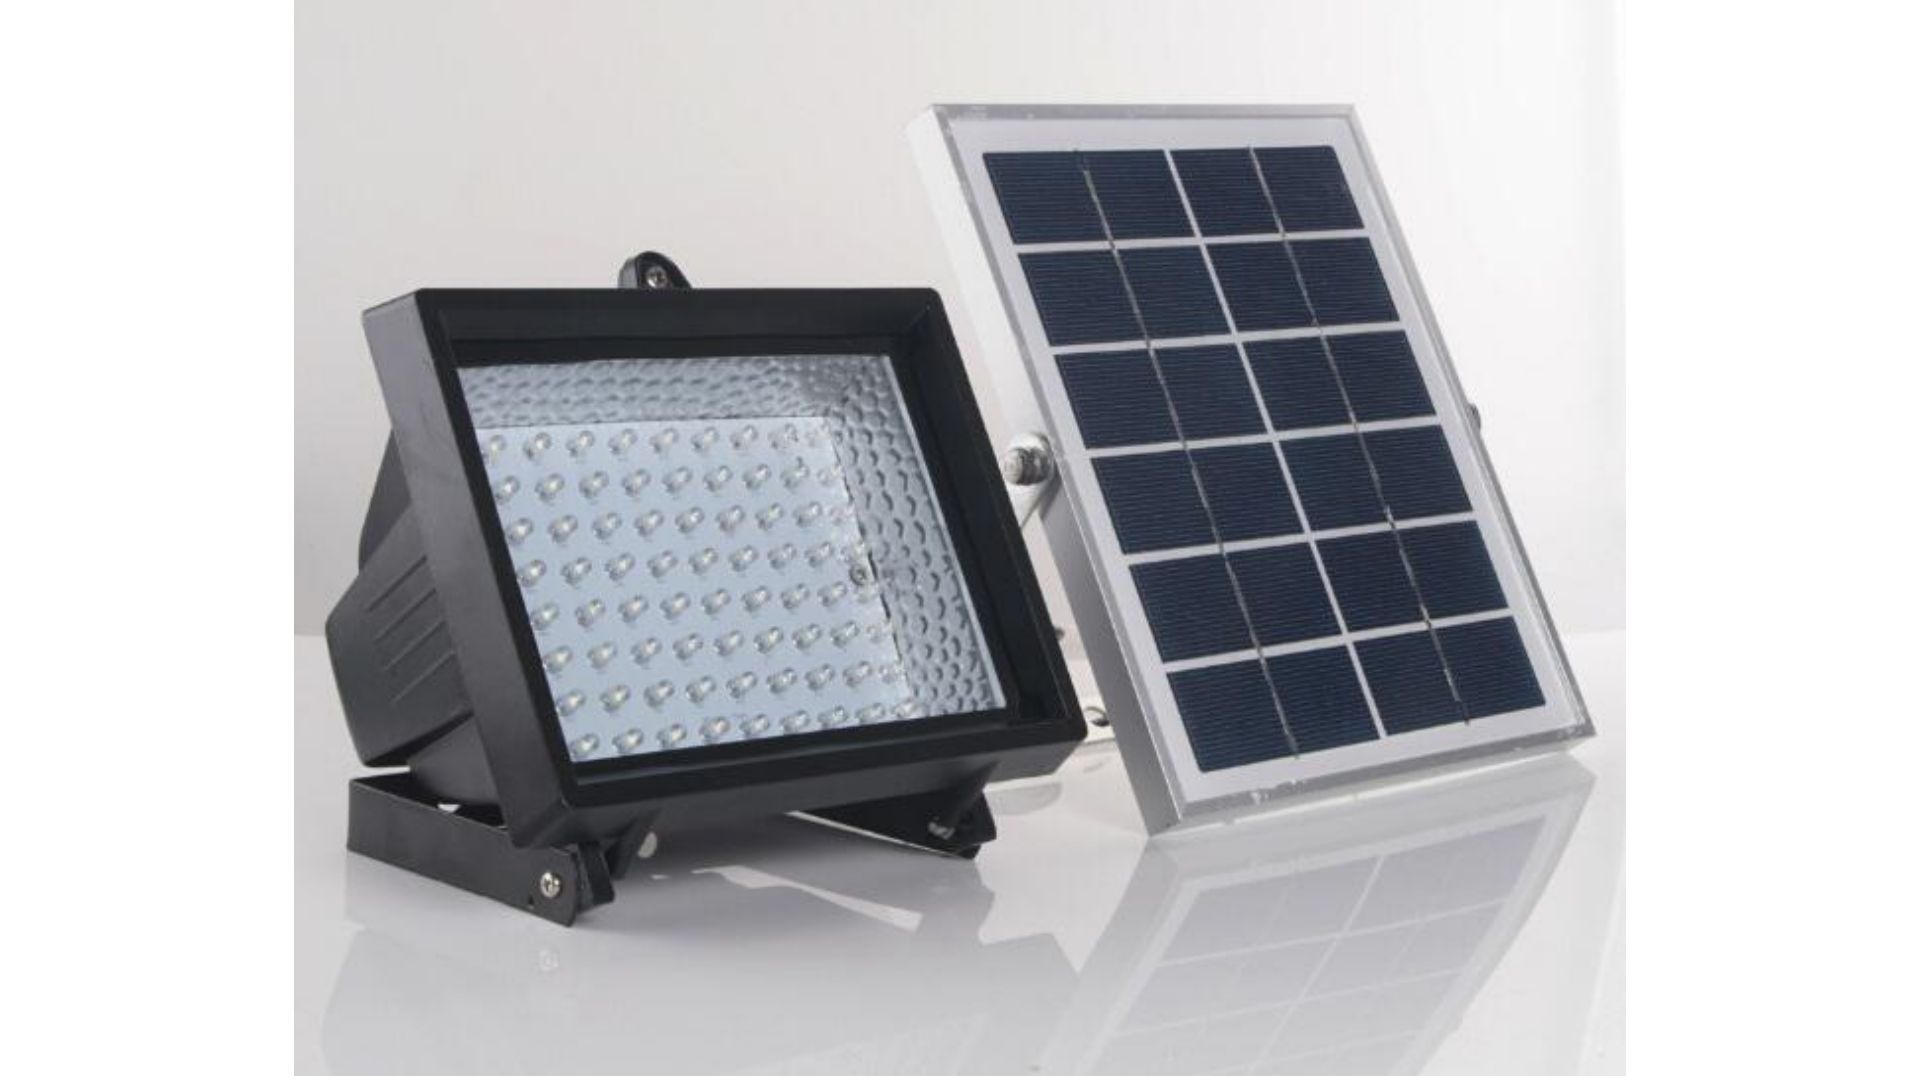 Best led solar flood lights greenlytes blog best led solar flood lights mozeypictures Choice Image